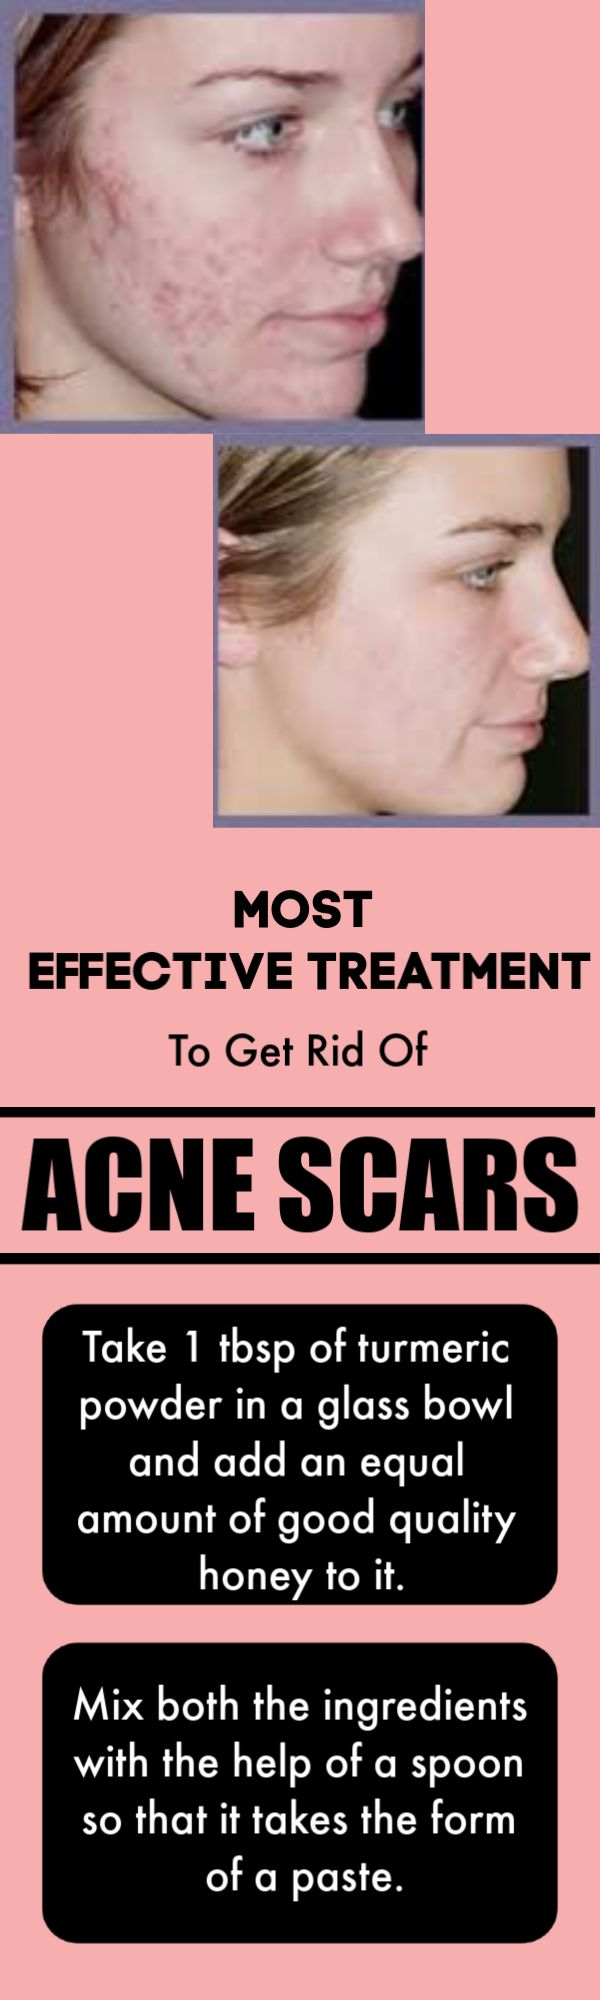 The Most Effective Home Treatment To Get Rid Of Acne Scars